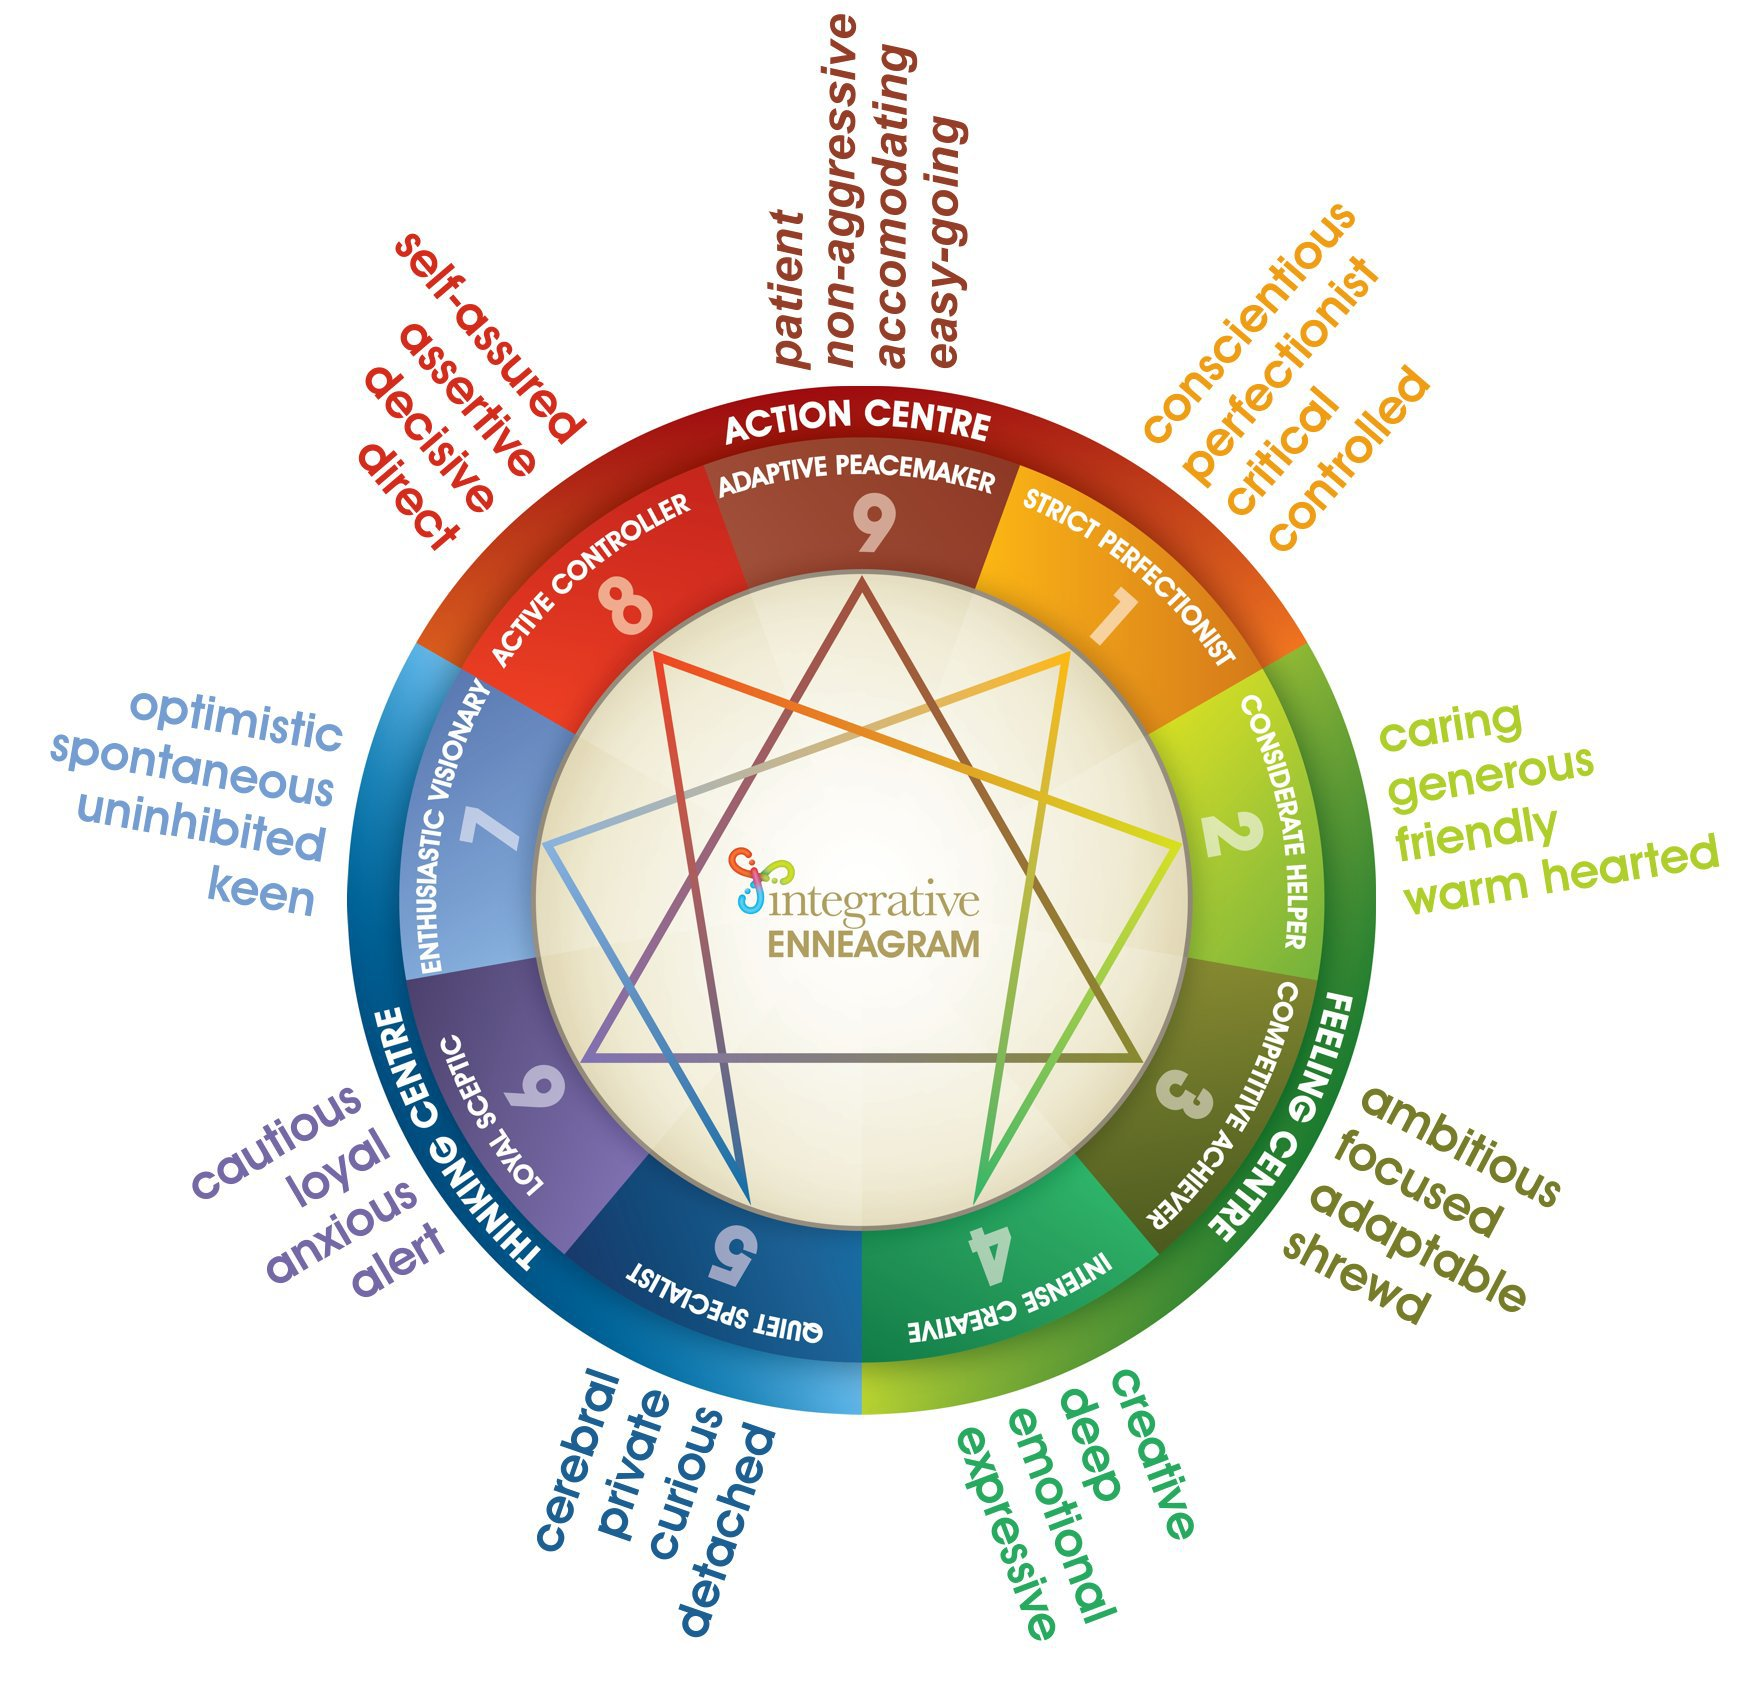 The Enneagram Growing into our Pure Self